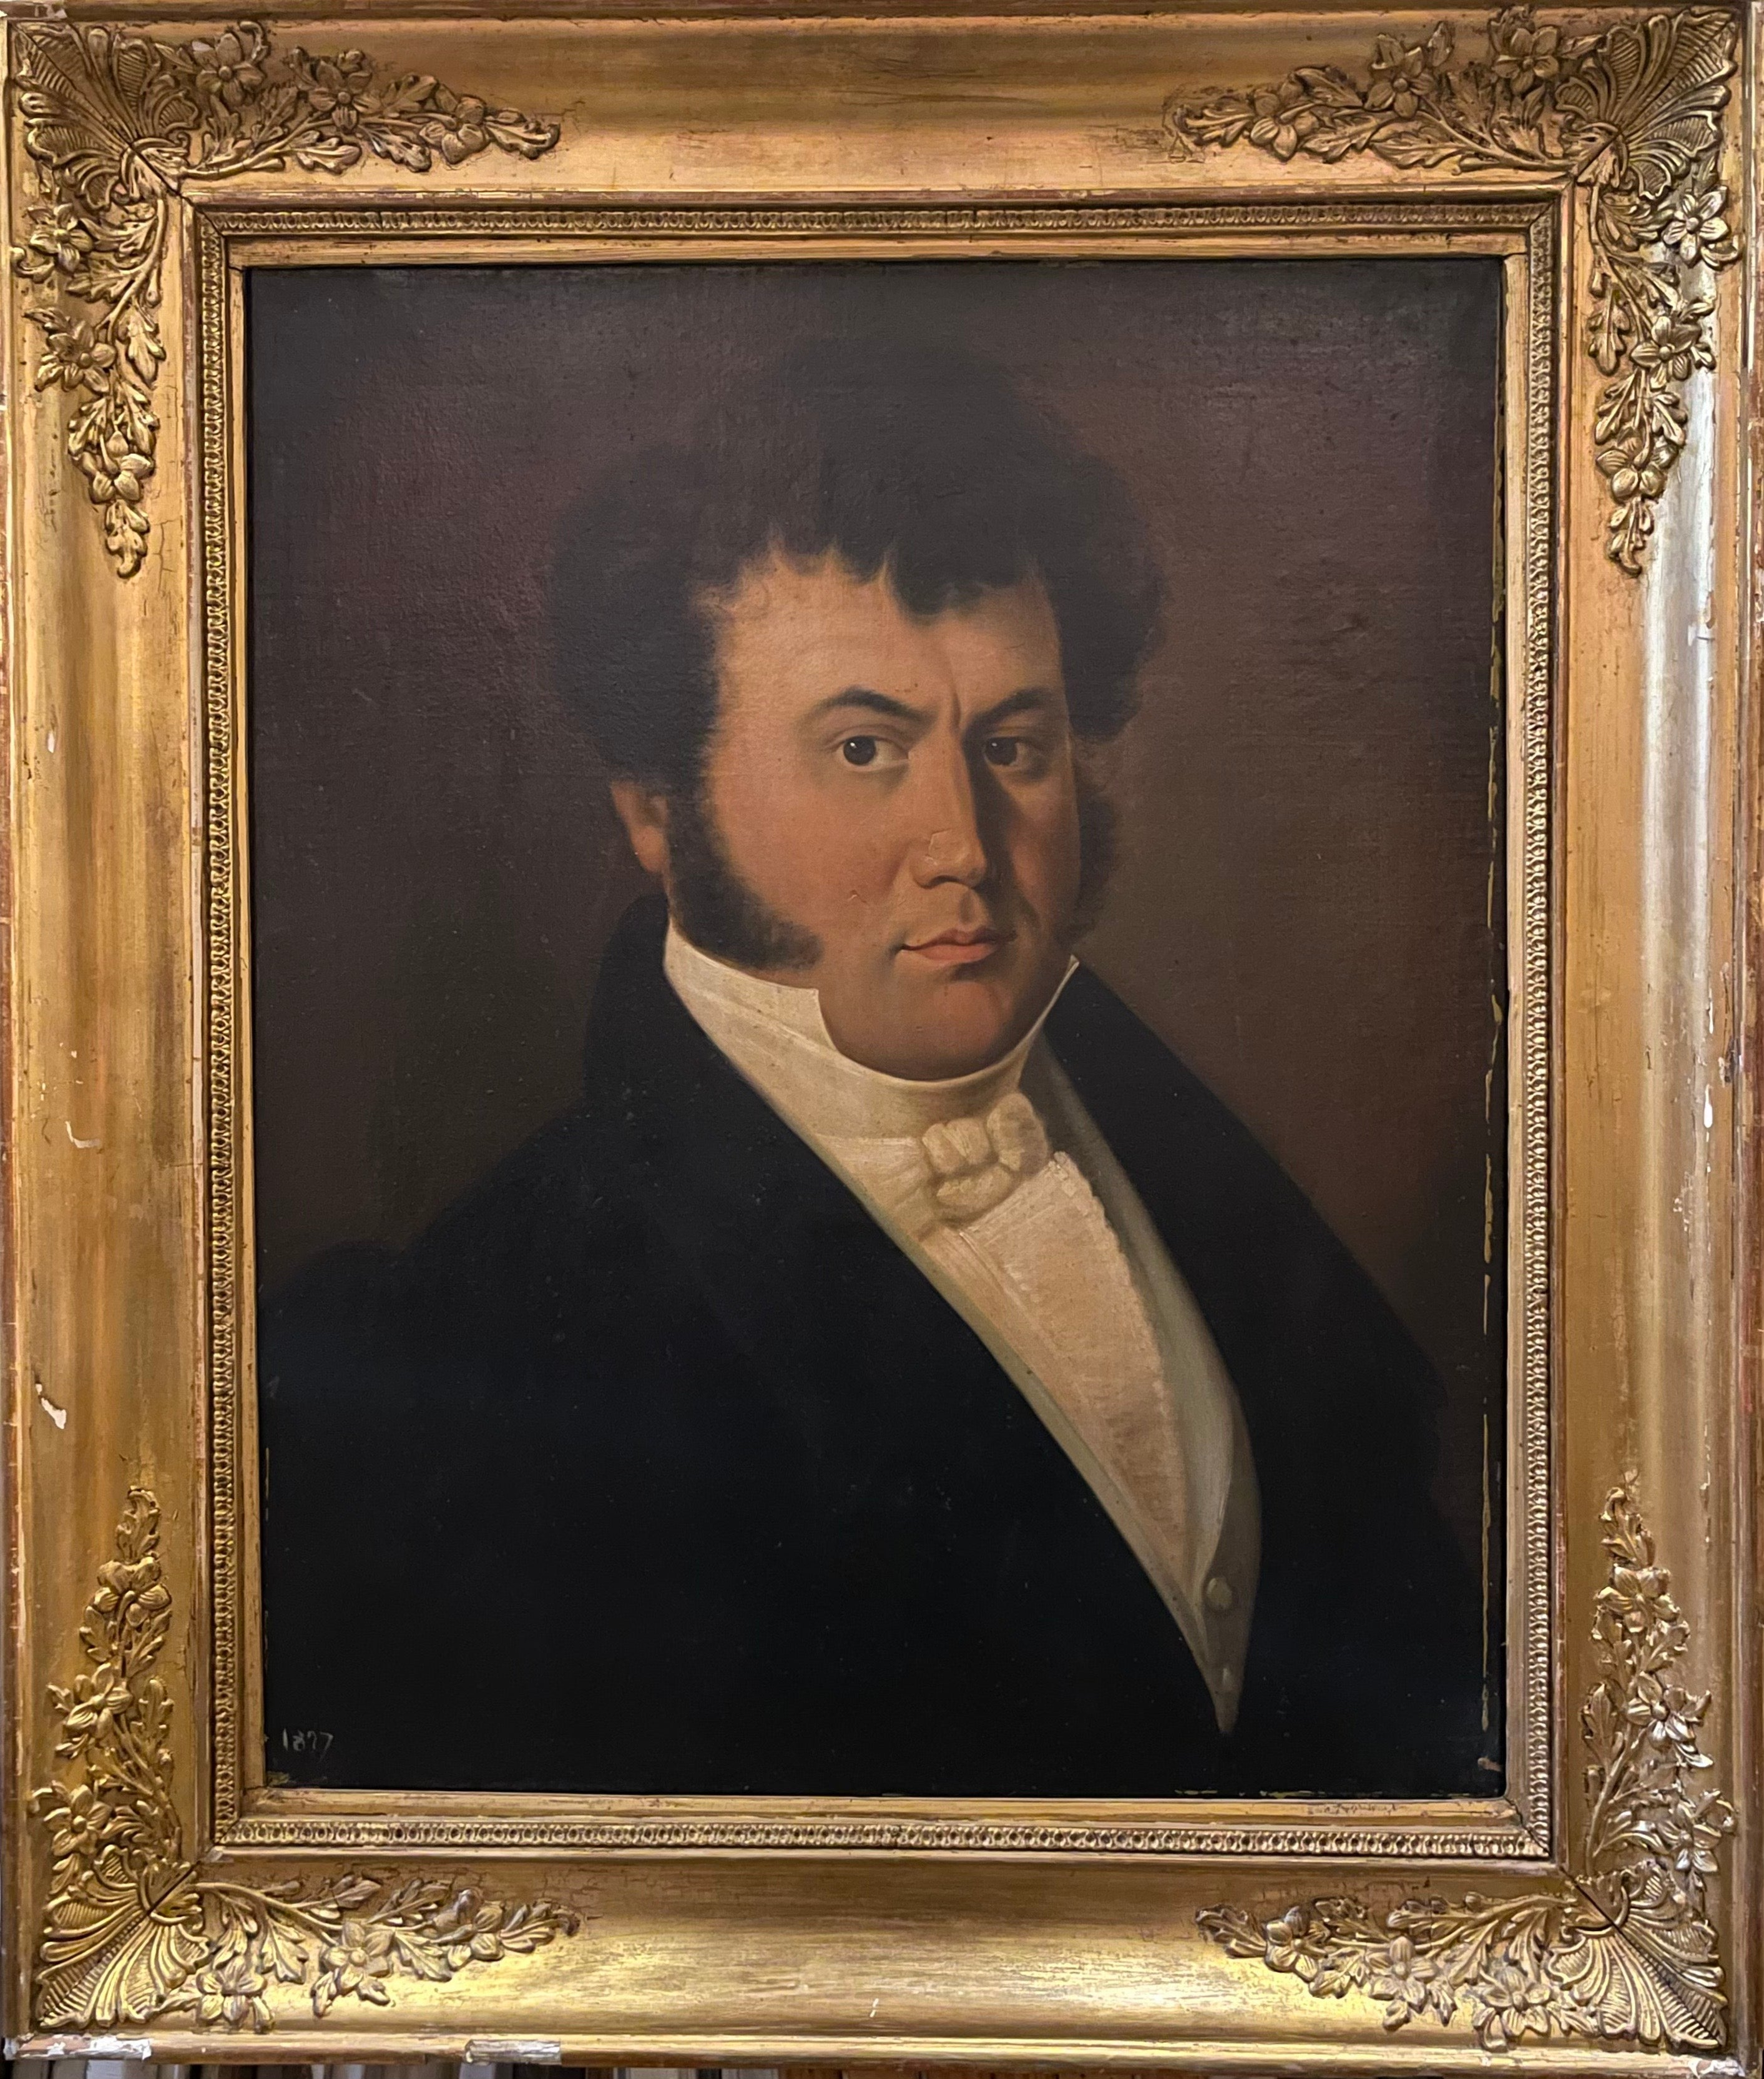 1820's French Empire Period Portrait of a Dapper Young Gentleman - Large Oil